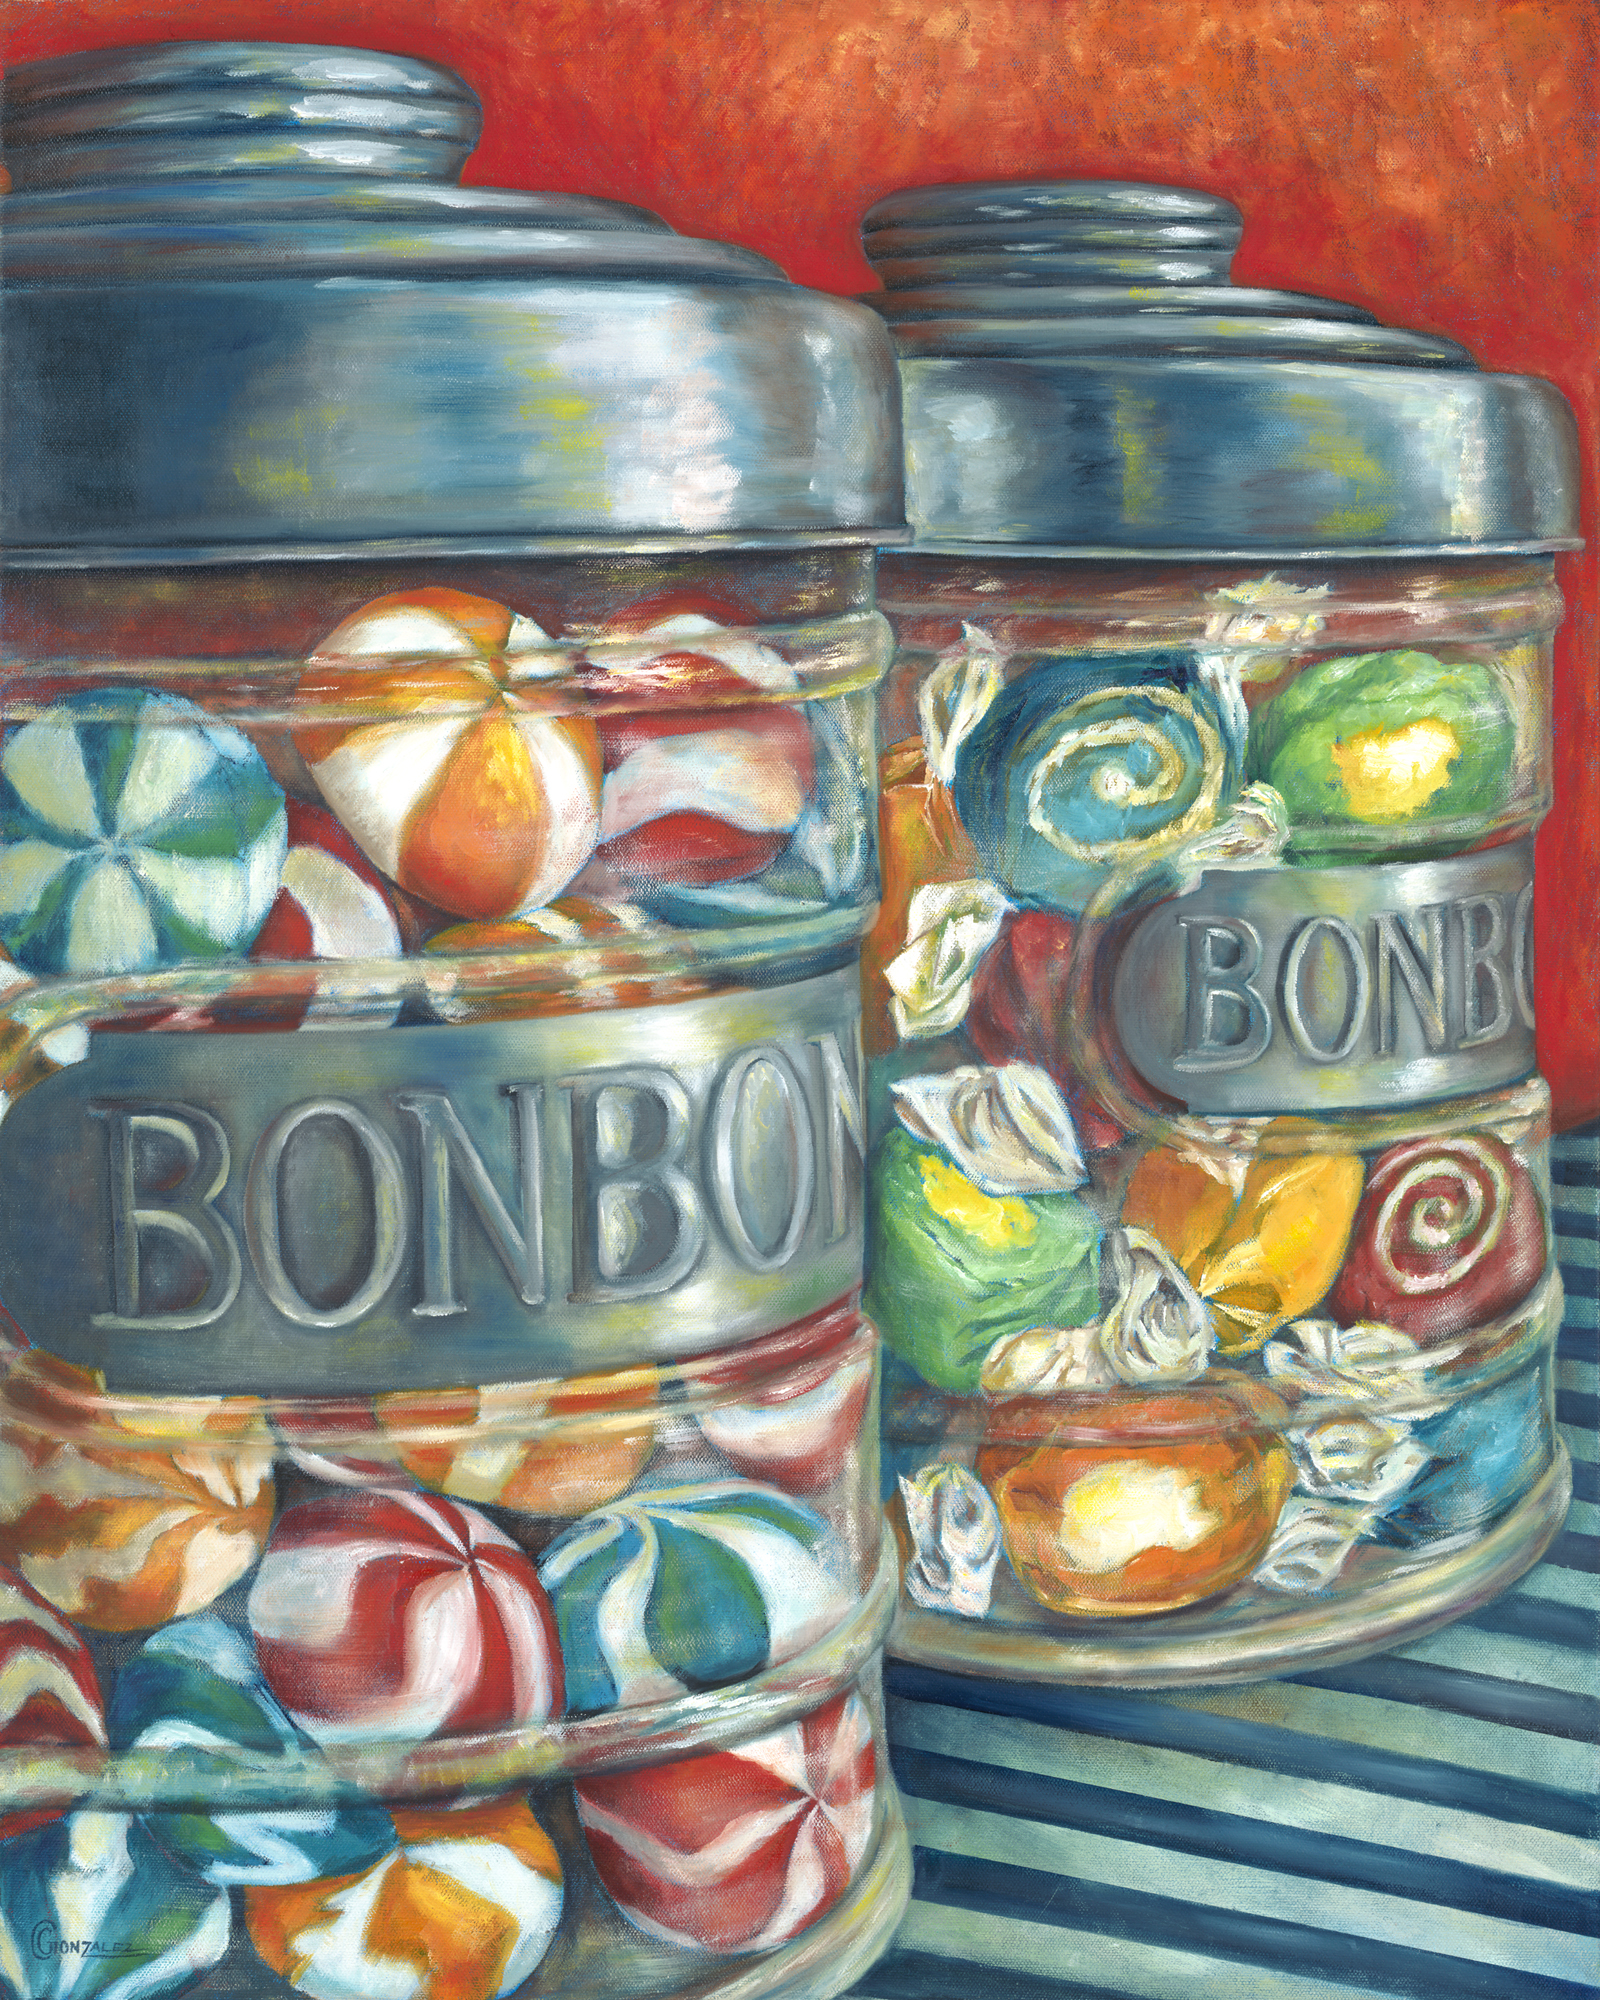 Carmen Gonzalez: 'bonbon oui oui', 2012 Oil Painting, Food. Painted with oil on canvas.  My candies series paintings were inspired by childhood memories.  Every time I see certain candies, I am reminded of times as a child.  Candy has a way of luring us in with its bright colors, fun shapes, and addicting flavors.  It brings out the child ...